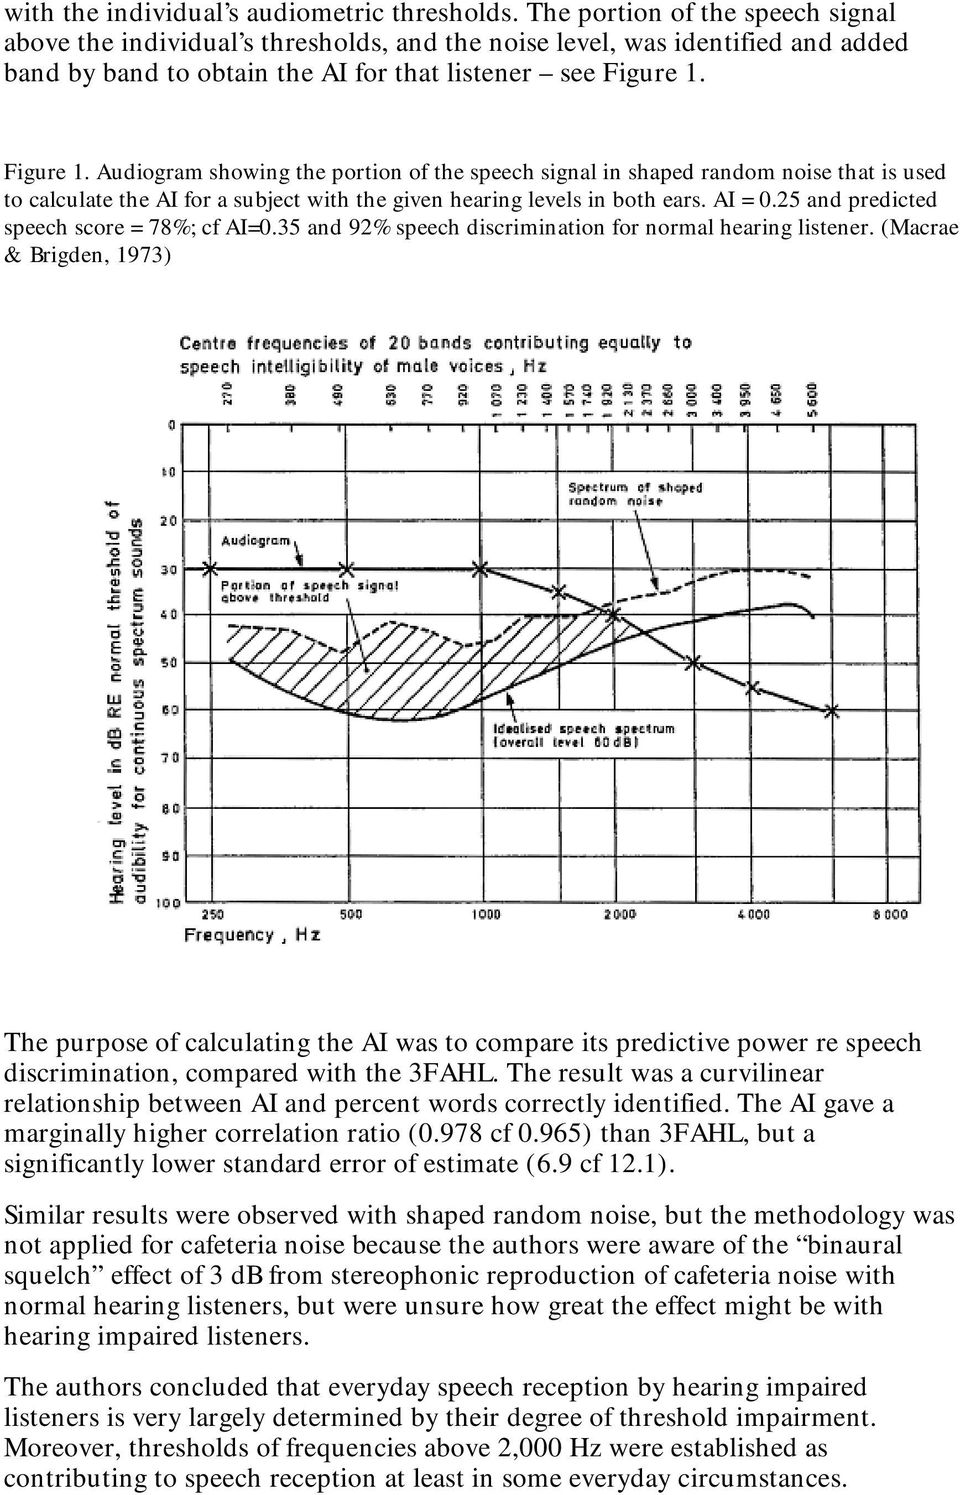 Figure 1. Audiogram showing the portion of the speech signal in shaped random noise that is used to calculate the AI for a subject with the given hearing levels in both ears. AI = 0.